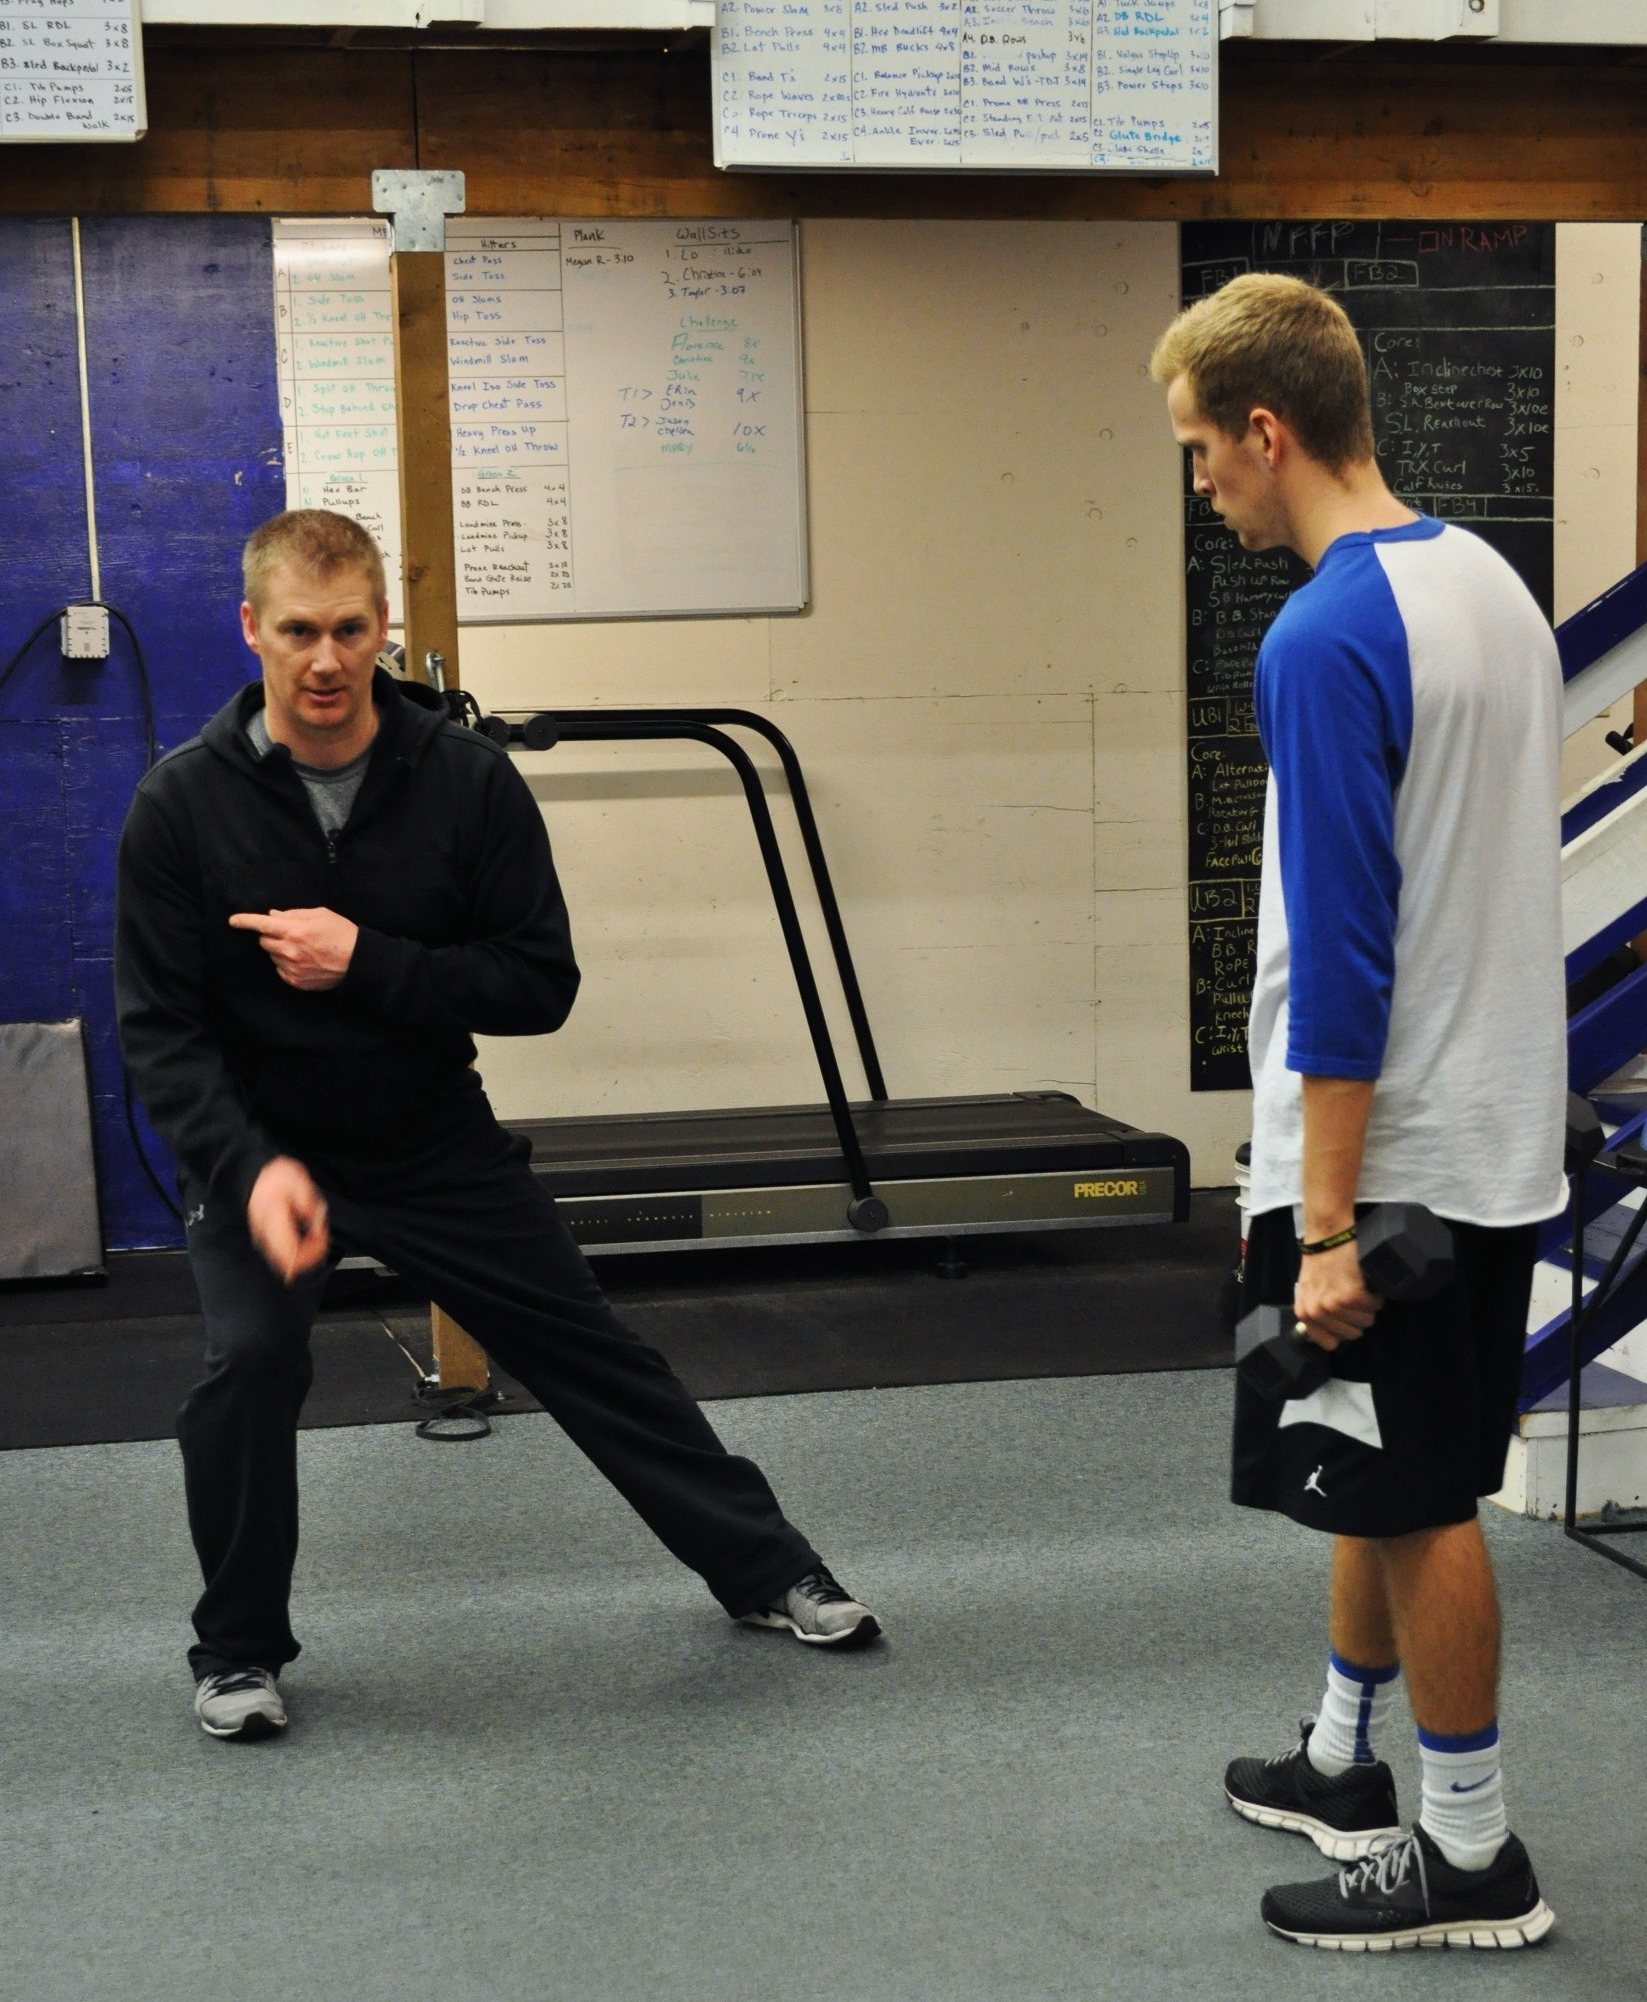 Jeff Millet worksout Students_NorthCore Performance.jpg